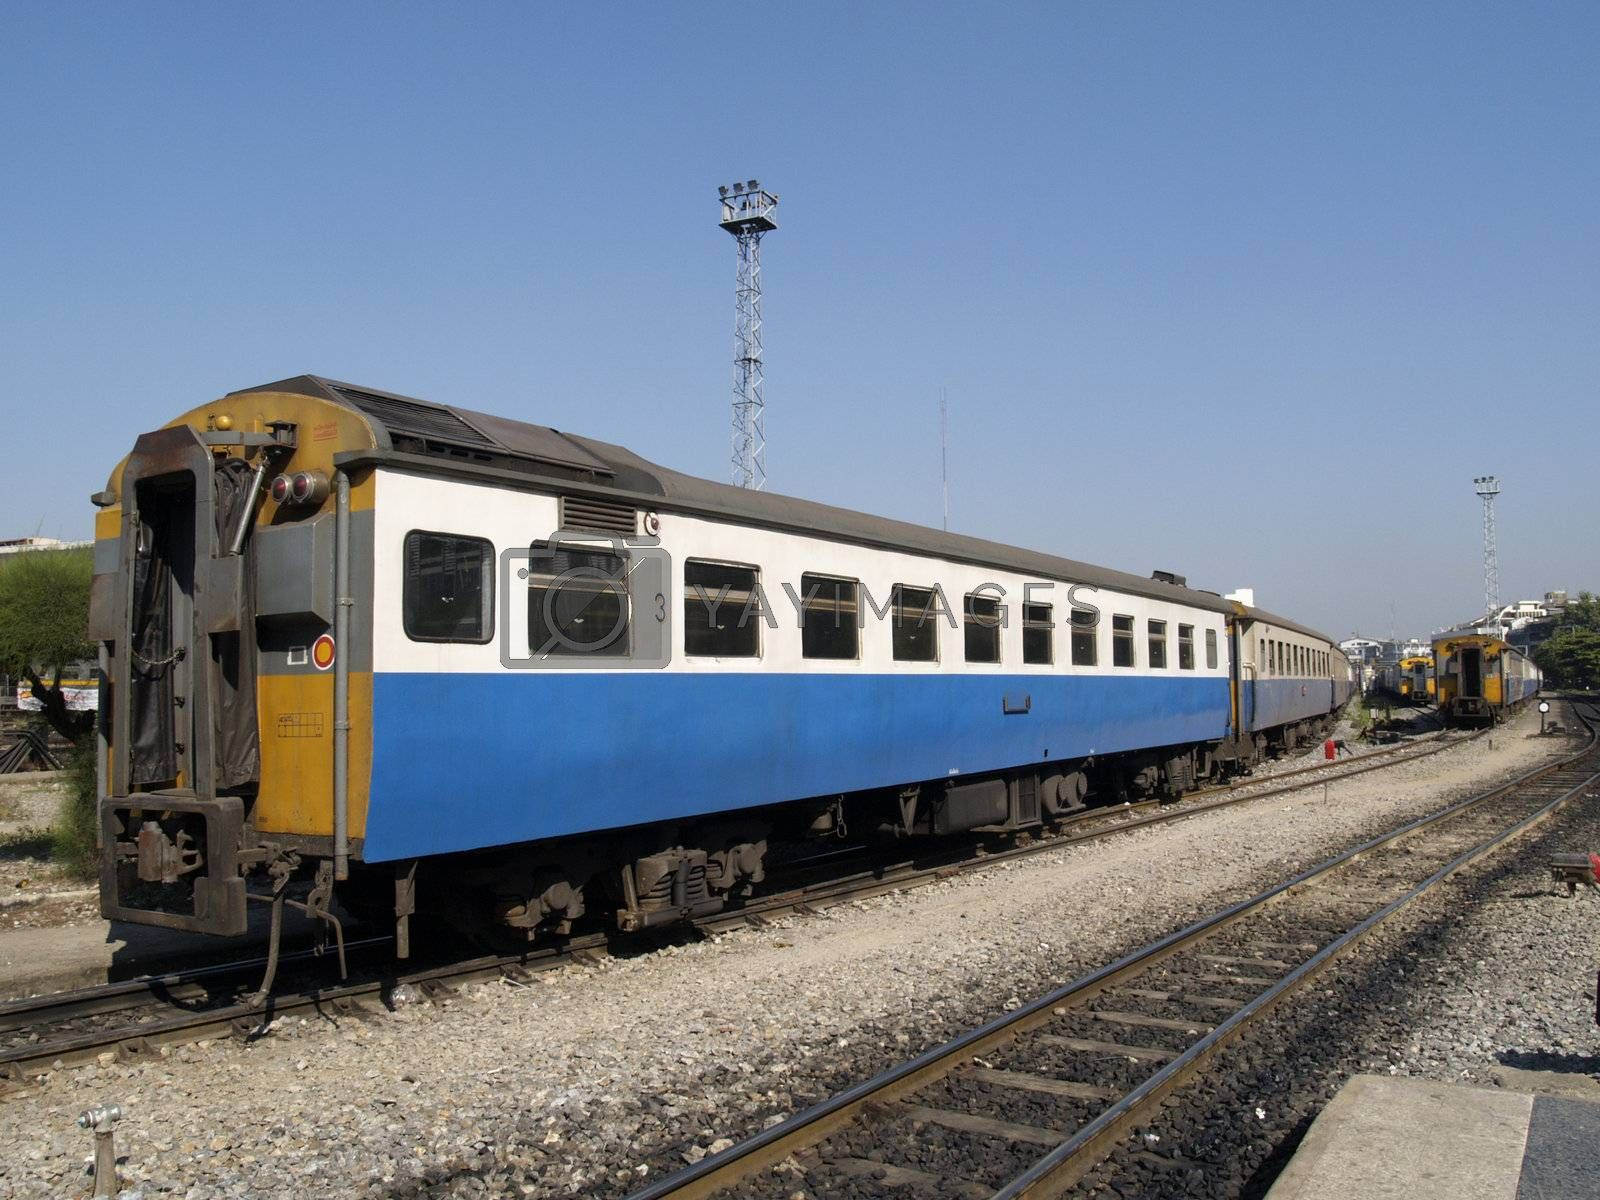 Third class railway car in Thailand by epixx